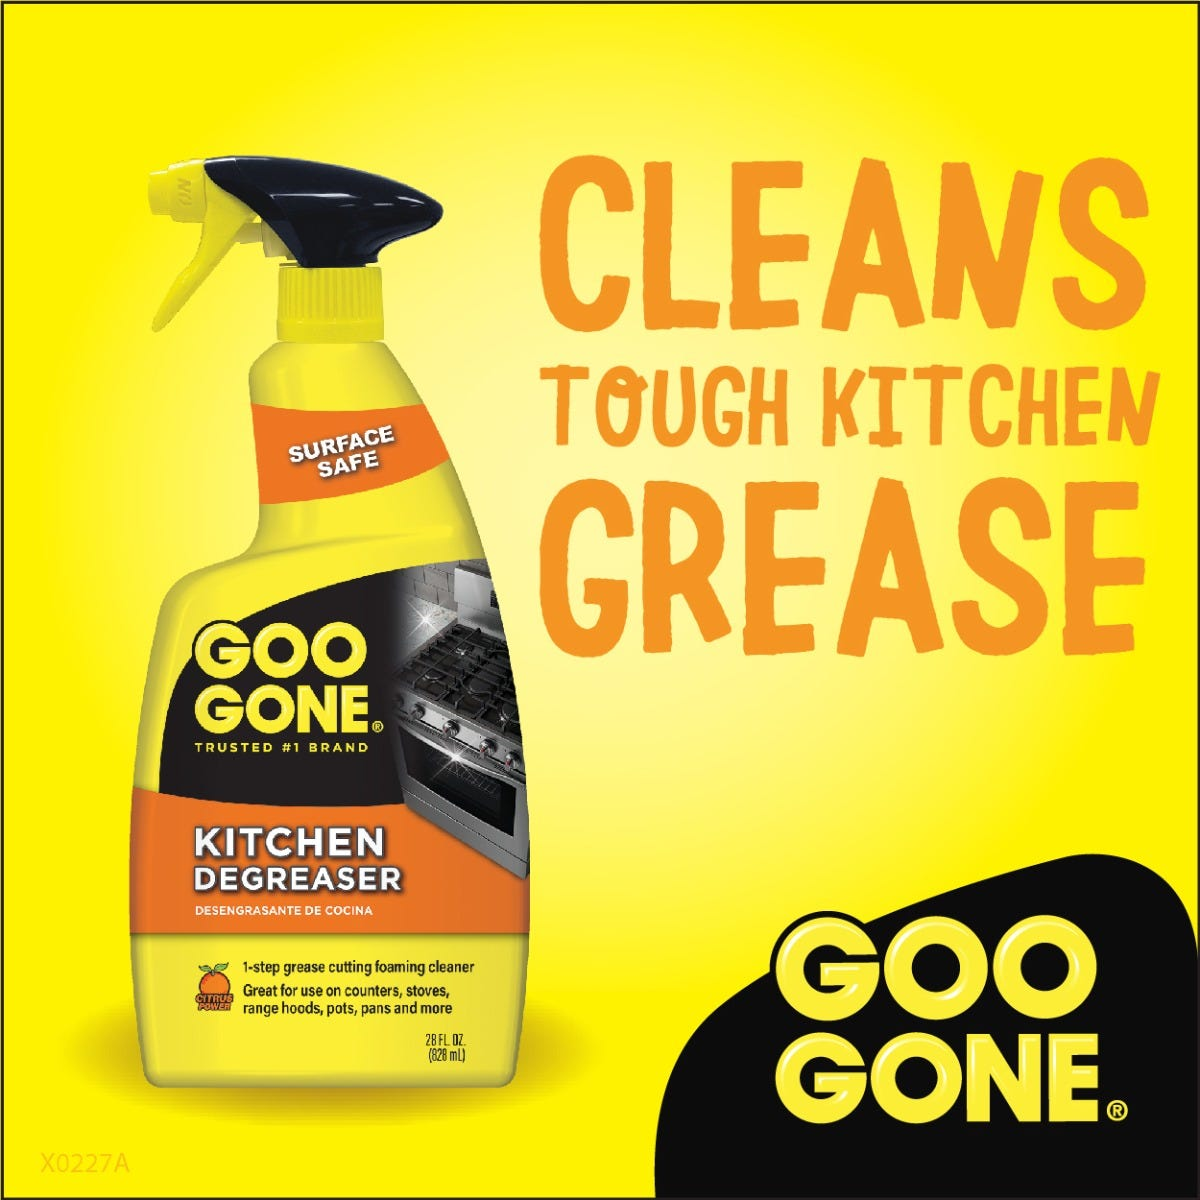 https://googone.com/media/catalog/product/g/o/goo_gone_kitchen_degreaser_beauty.jpg